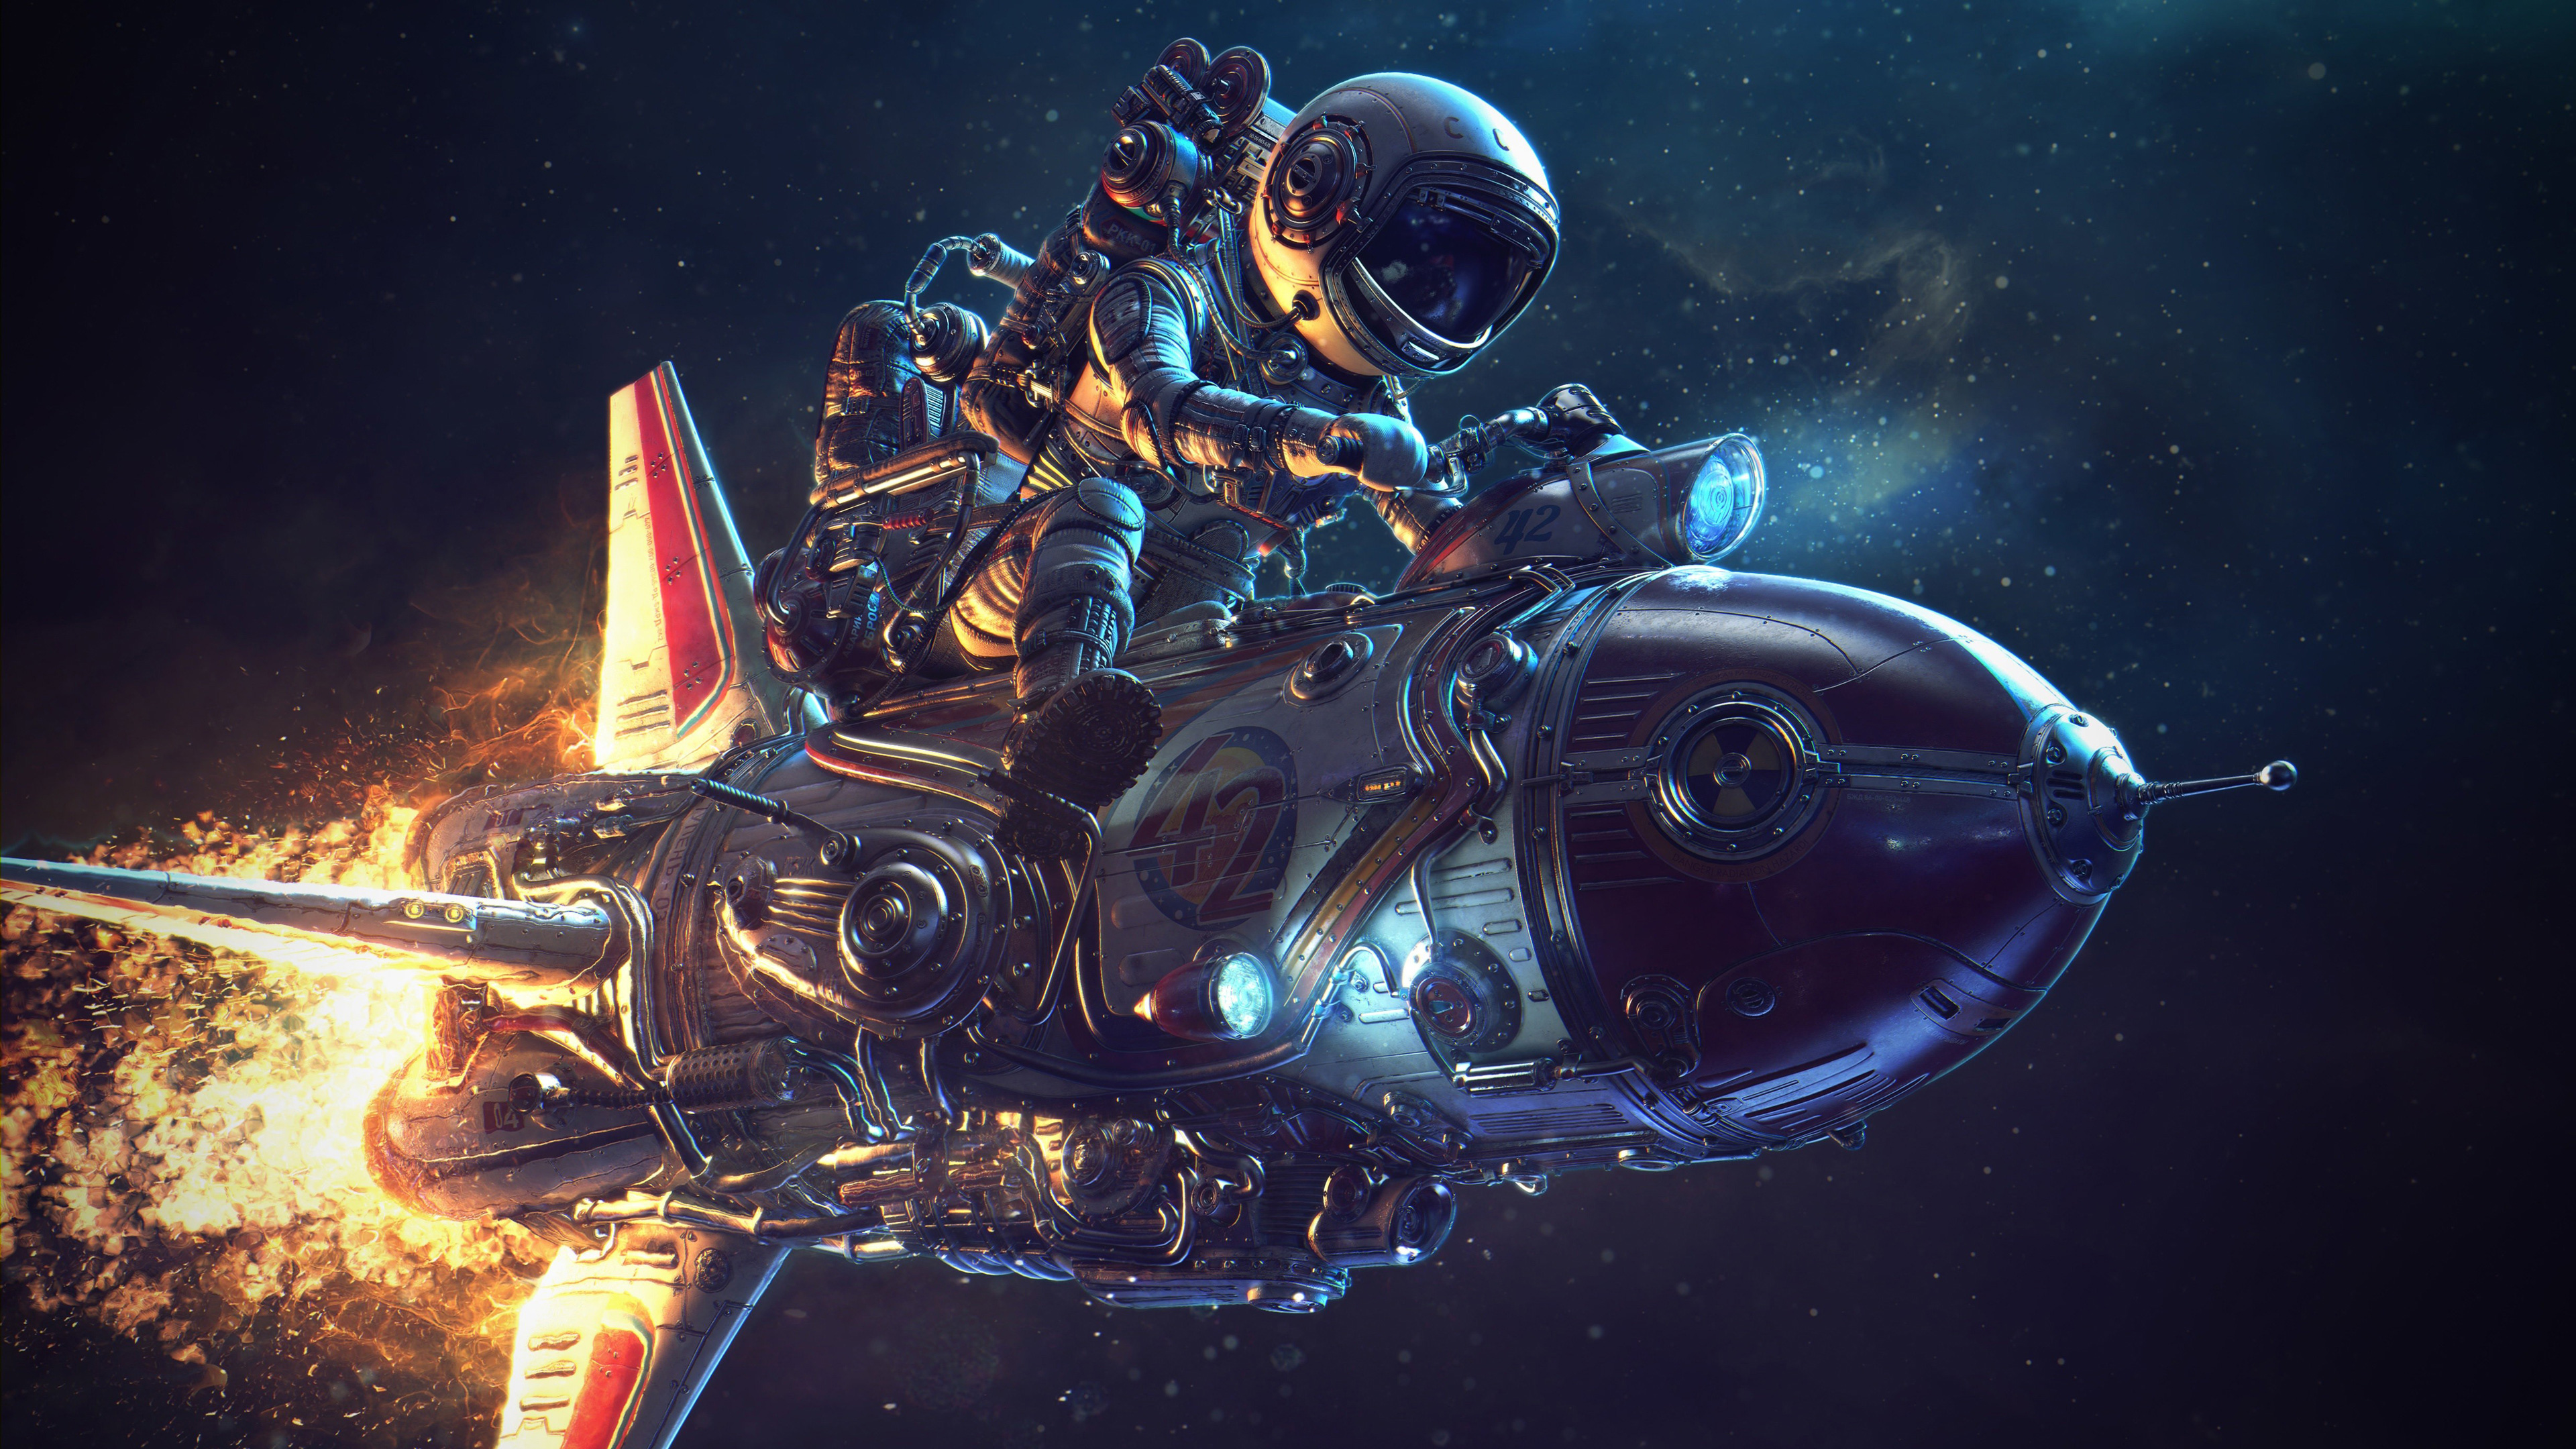 Astronaut Rocket Science Fiction 4k Hd Artist 4k Wallpapers Images Backgrounds Photos And Pictures